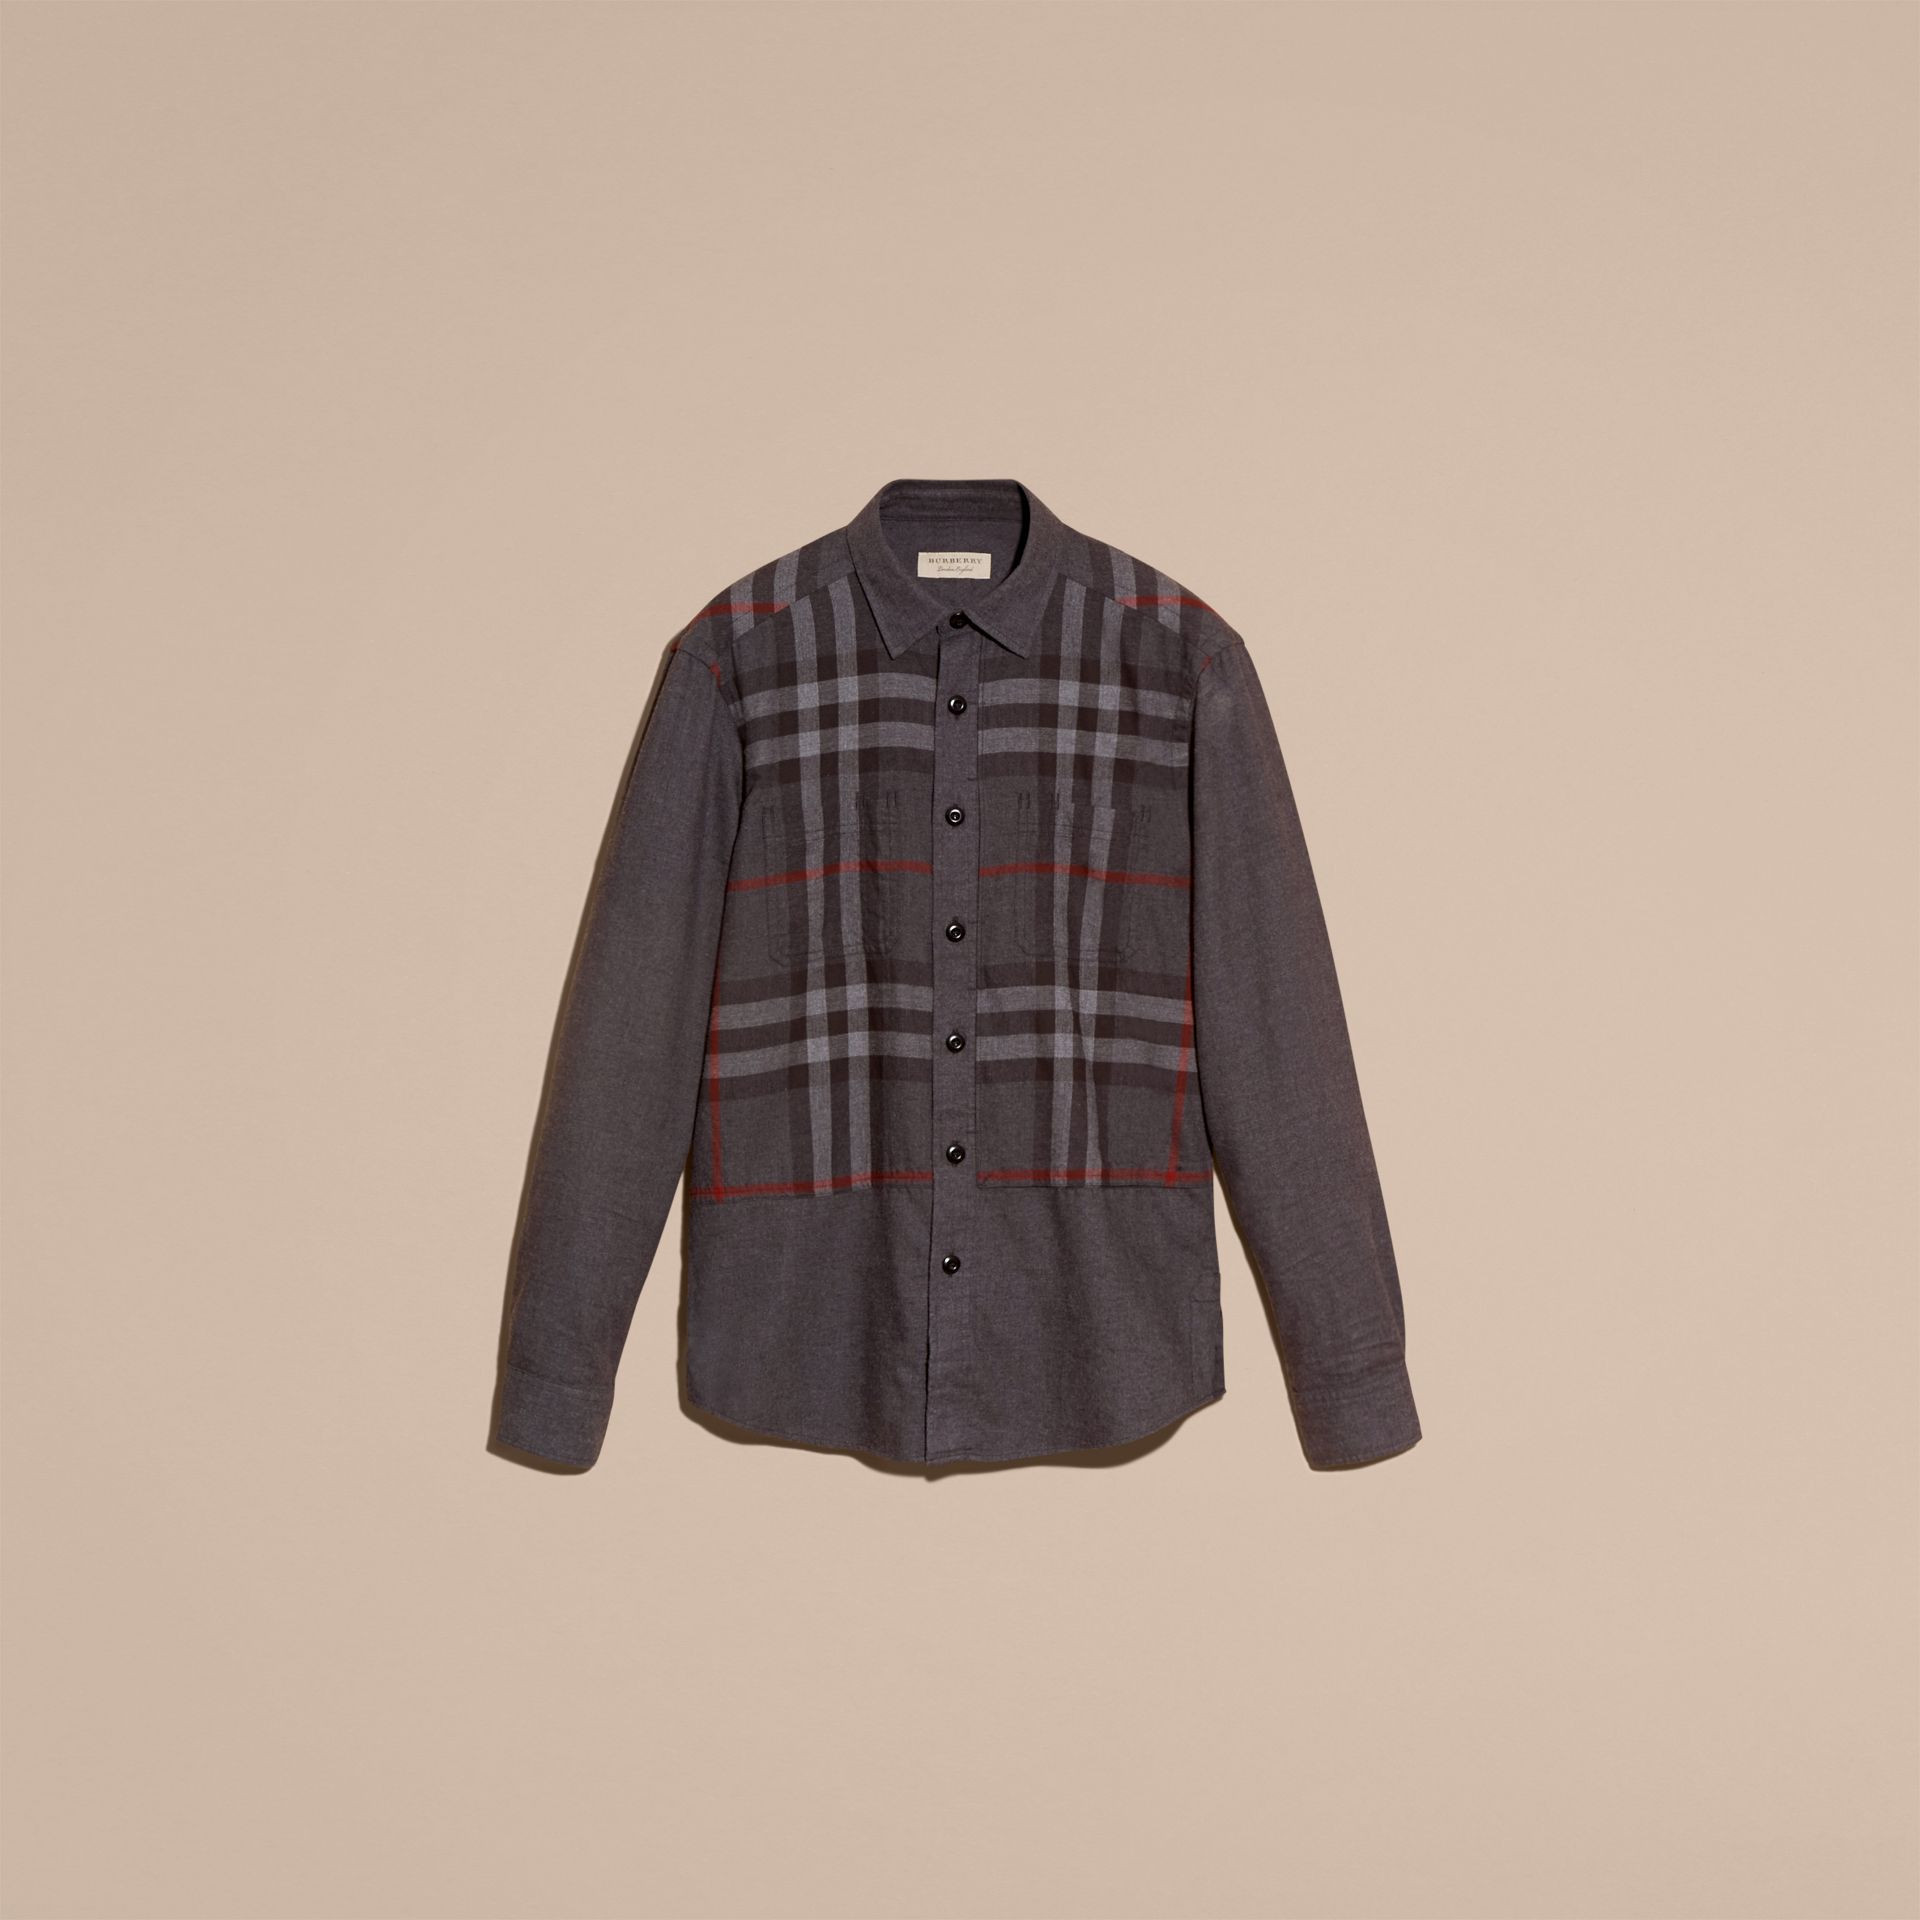 Charcoal melange Check Detail Cotton Flannel Shirt Charcoal Melange - gallery image 4